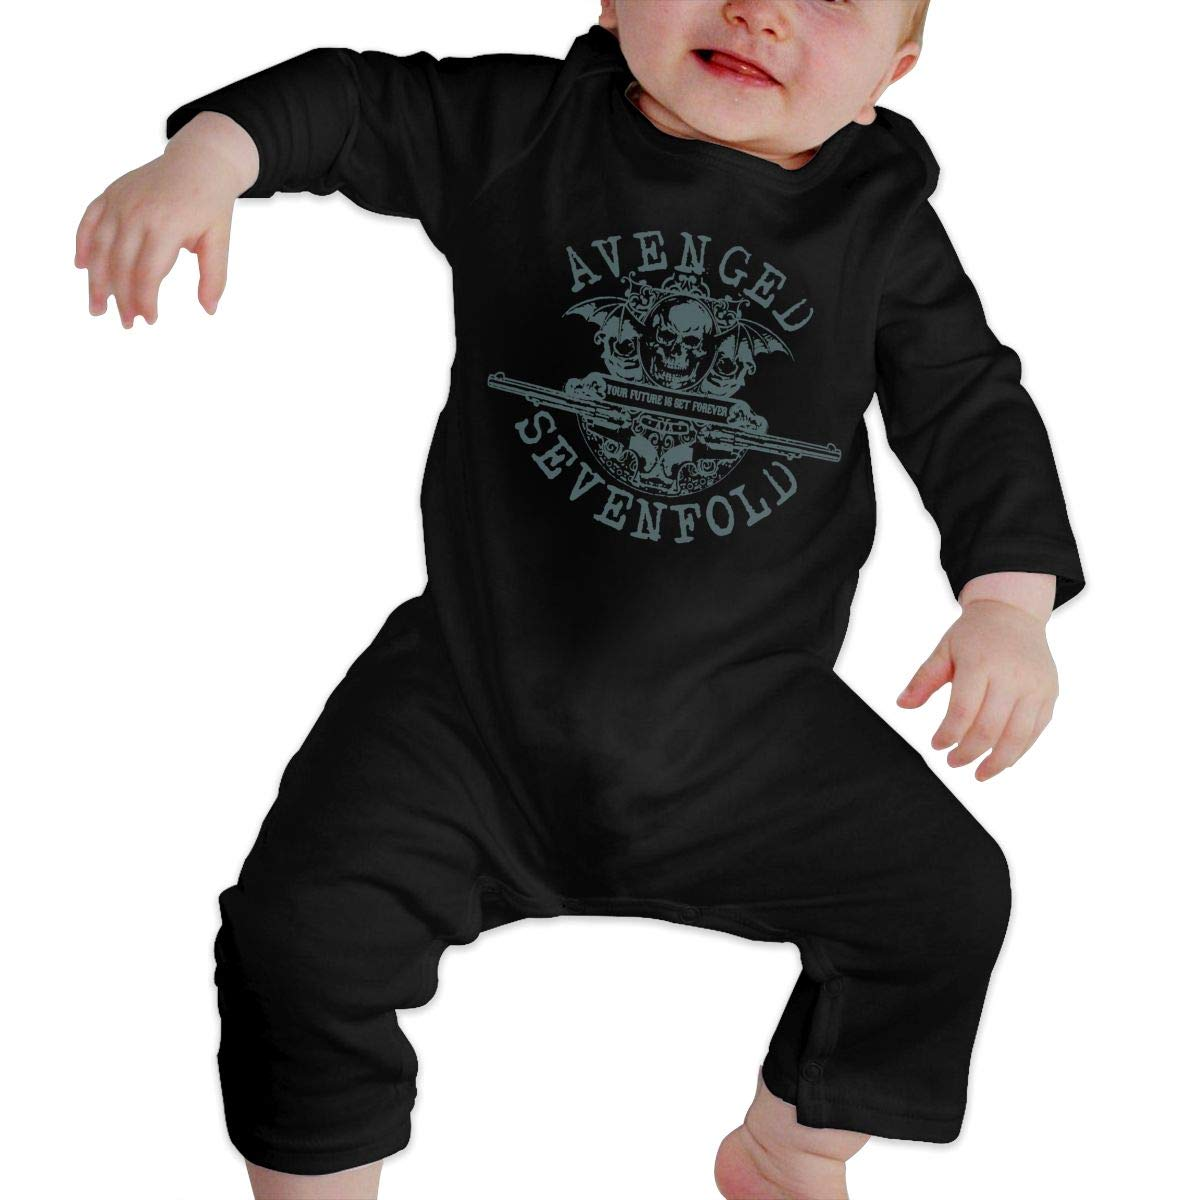 SOFIEYA Avenged-Sevenfold Kids Baby Unisex Cotton Cute Long Sleeve Hooded Romper Jumpsuit Baby Crawler Clothes Black